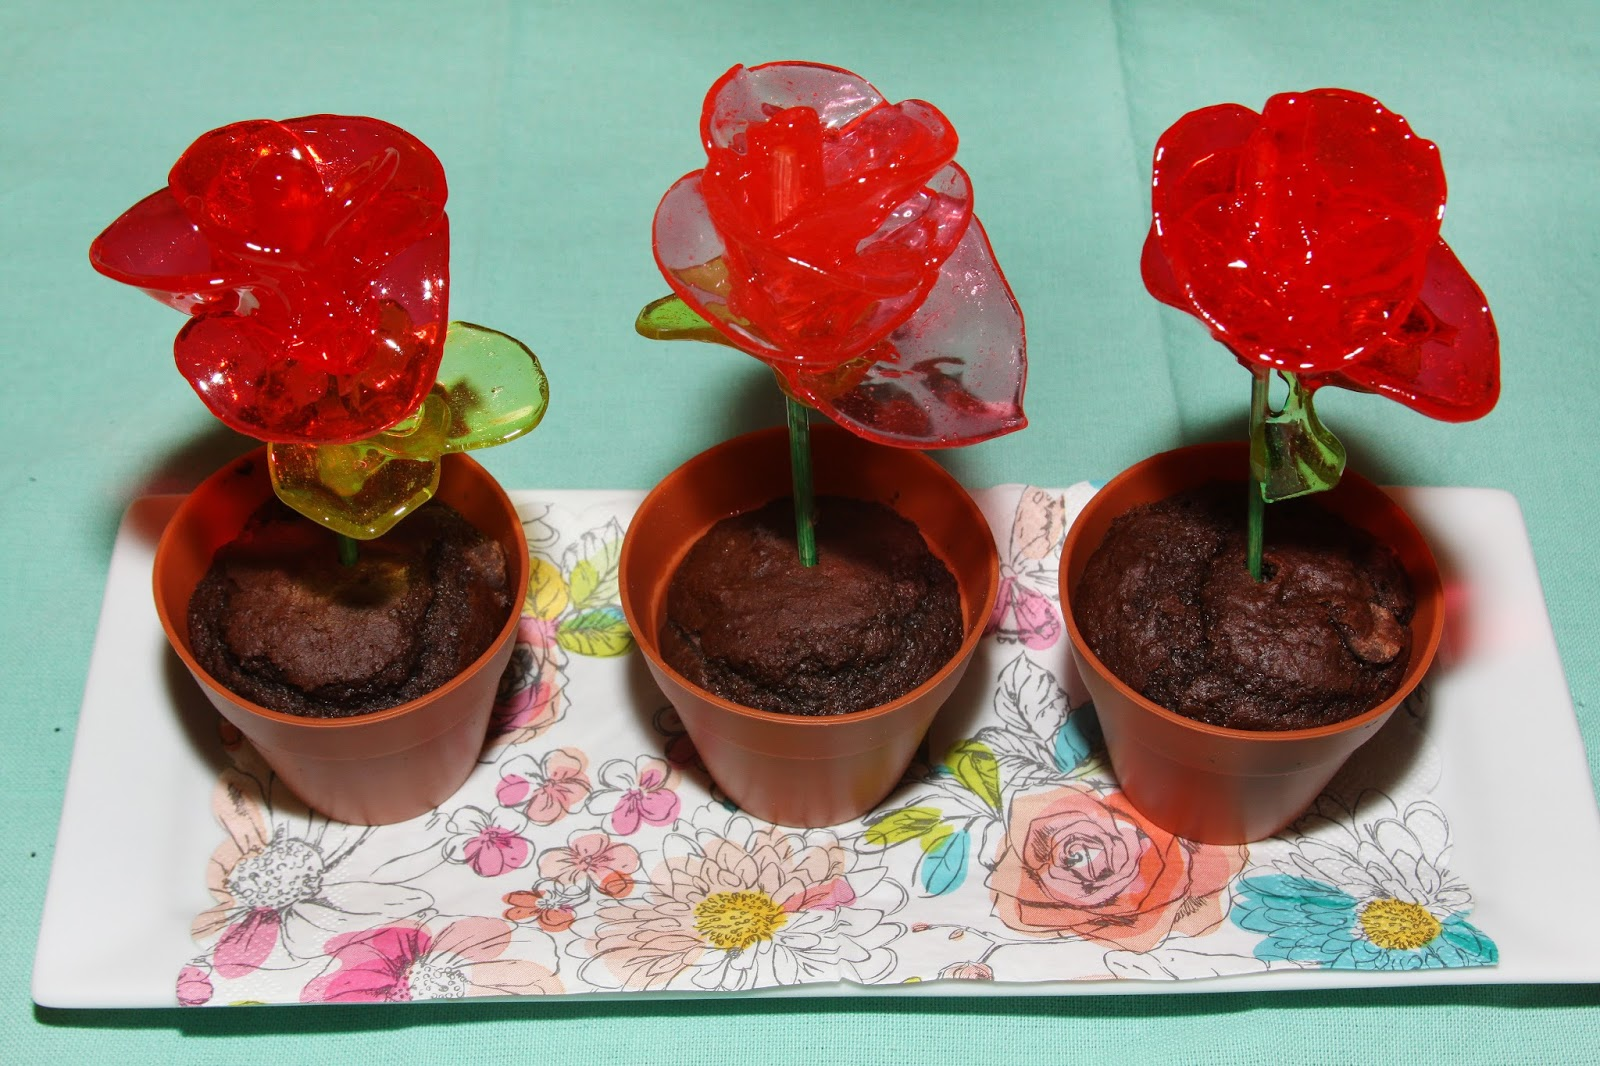 For the Love of Food Blog & For the Love of Food: Flower Pot Muffins with Candy Roses